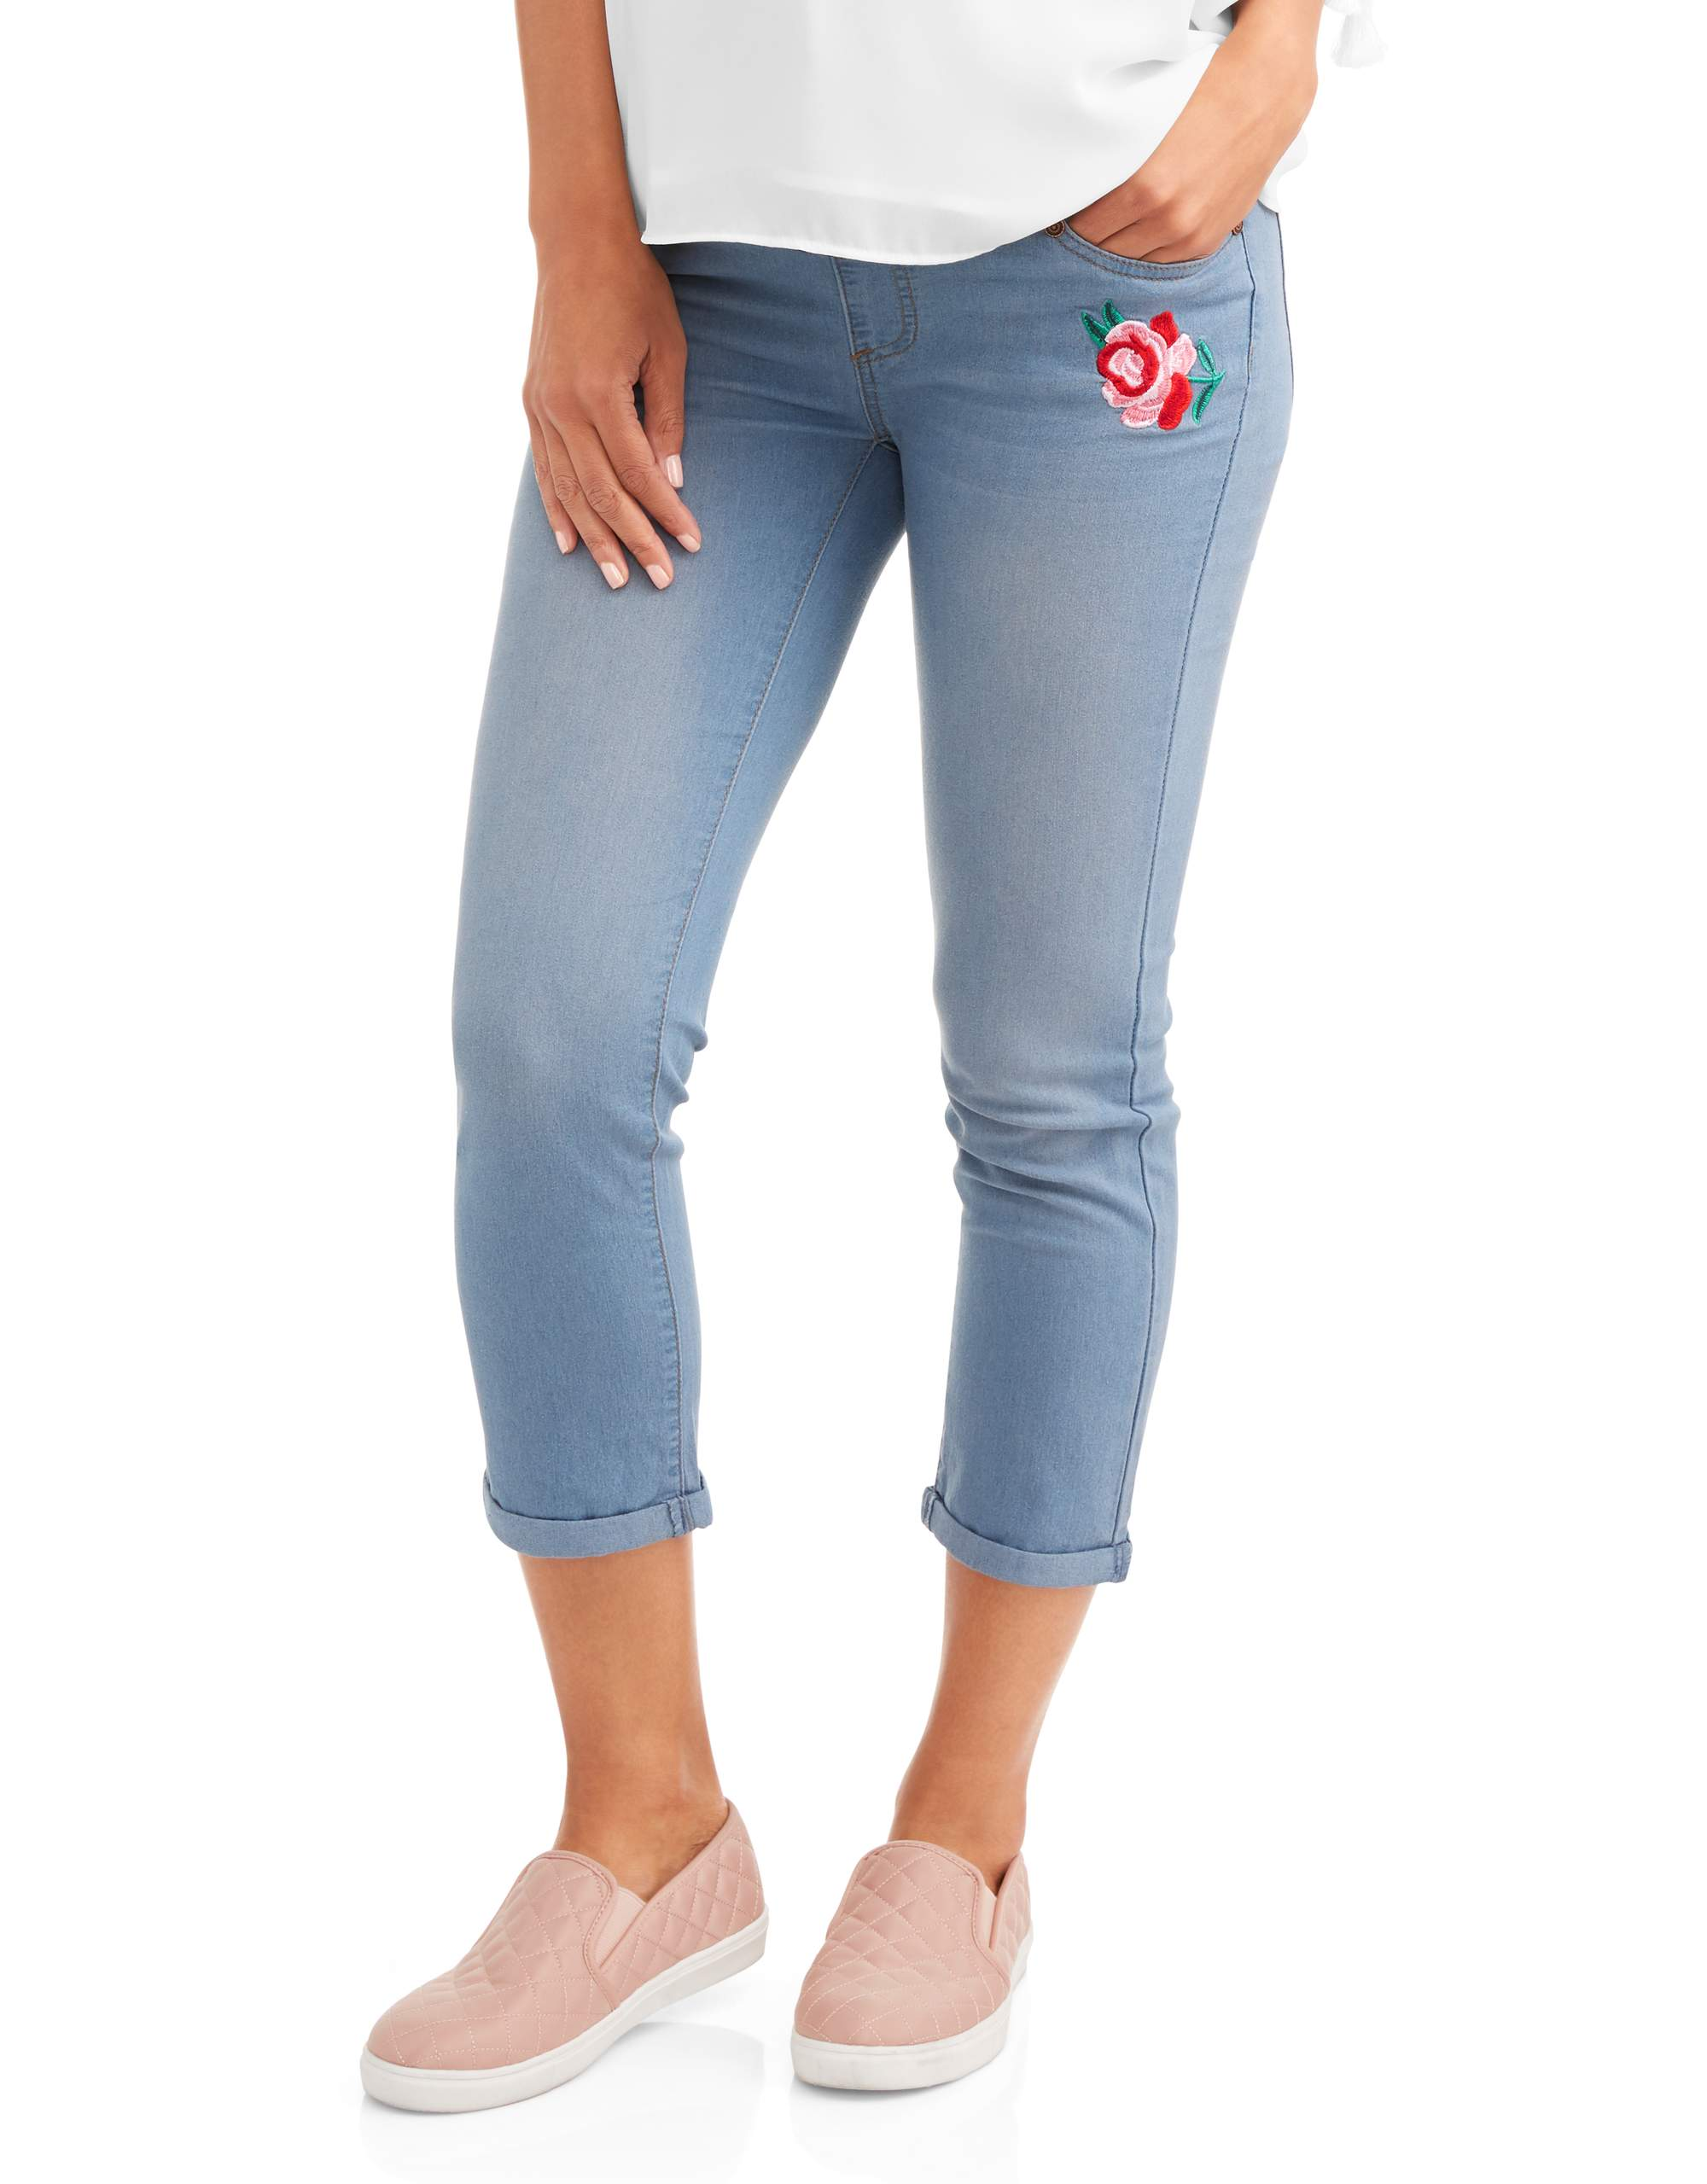 Maternity Floral Patch Full Panel Capri Jeans with Ripped Details --Available in Plus Size by Generic